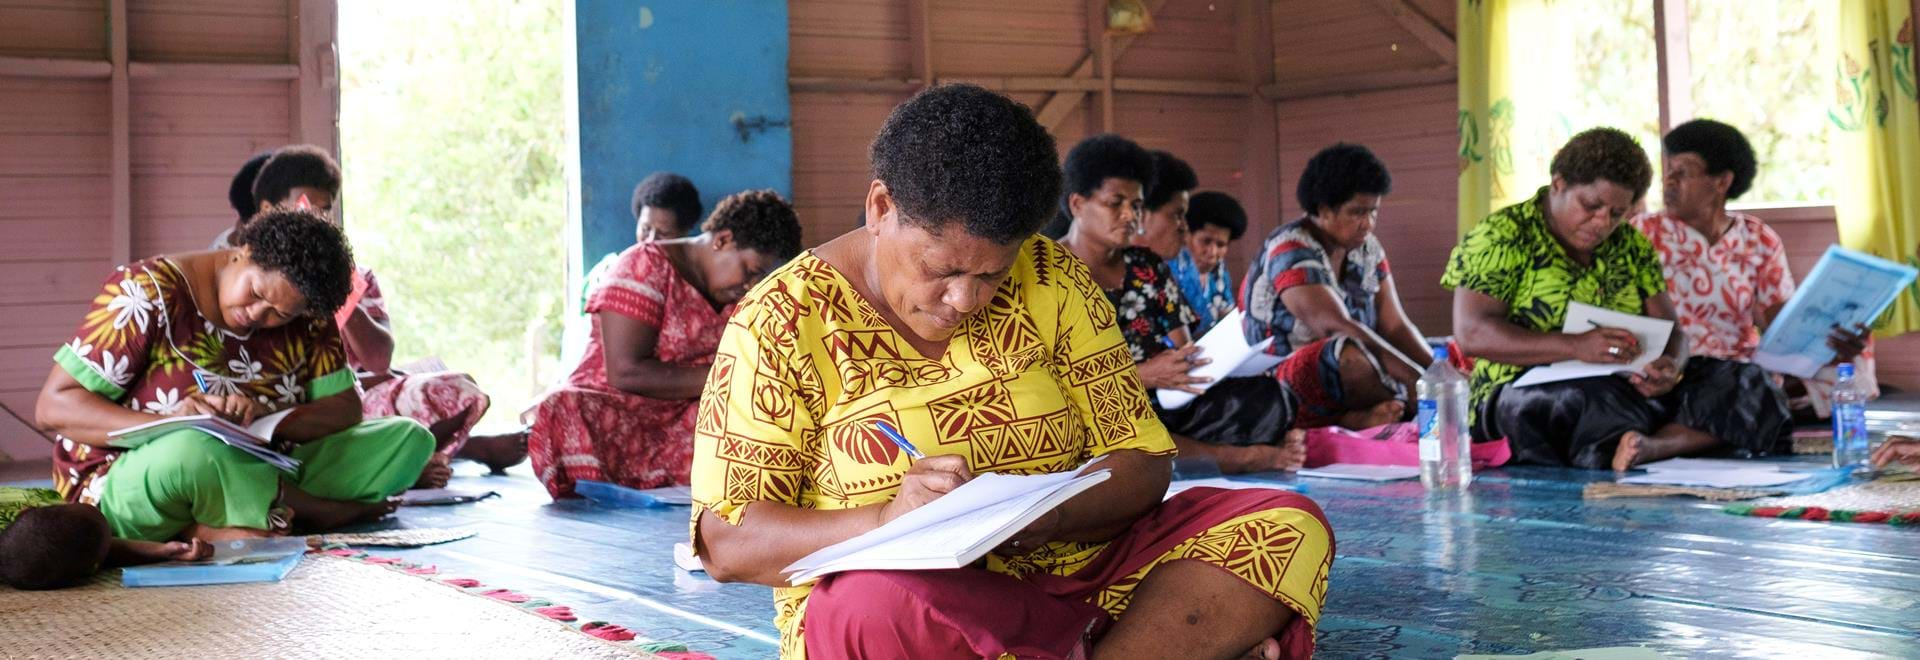 A group of Fijian women sitting in a room writing in notebooks